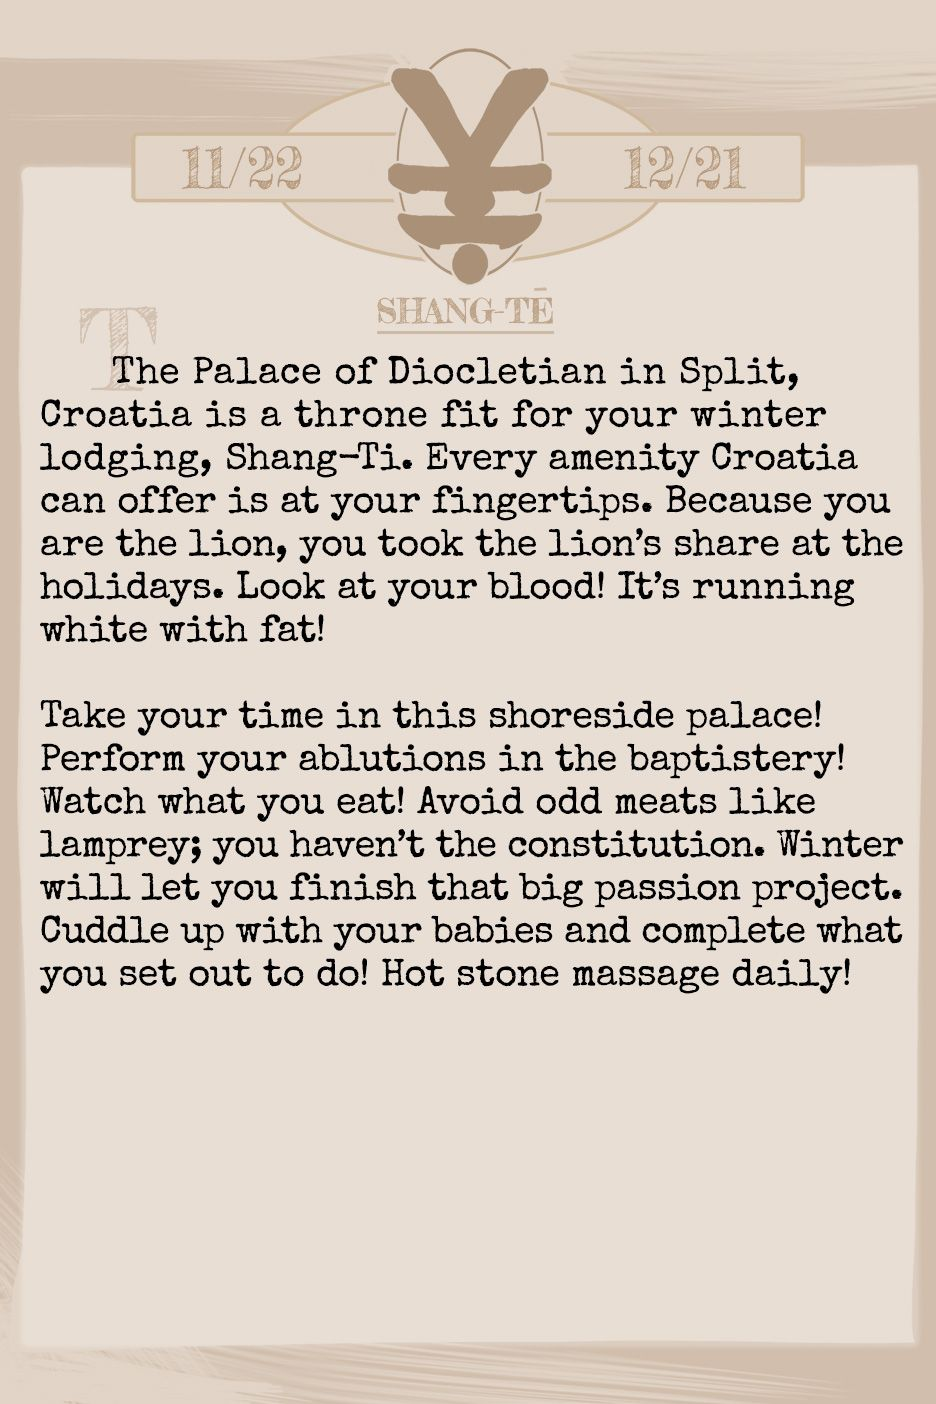 January 2019 Horoscope (Old sign: Sagitarius) The Palace of Diocletian in Split, Croatia is a throne fit for your winter lodging, Shang-Ti. Every amenity Croatia can offer is at your fingertips. Because you are the lion, you took the lion's share at the holidays. Look at your blood! It's running white with fat! Take your time in this shoreside palace! Perform your ablutions in the baptistery! Watch what you eat! Avoid odd meats like lamprey; you haven't the constitution. Winter will let you finish that big passion project. Cuddle up with your babies and complete what you set out to do! Hot stone massage daily!